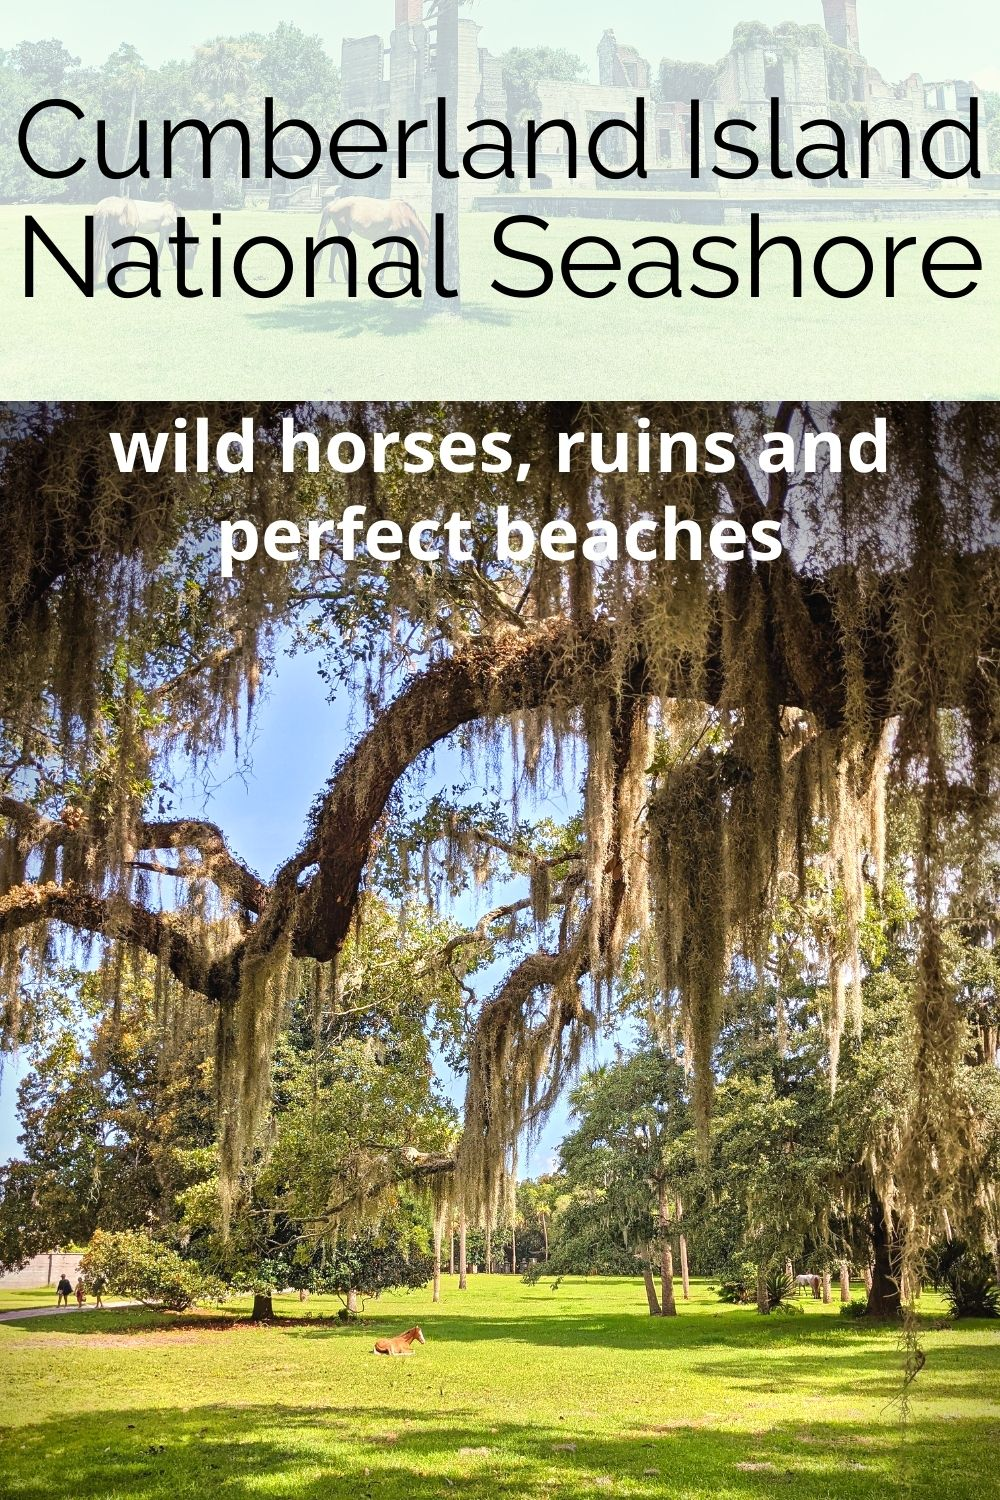 Do you know about Cumberland Island National Seashore and the wild horses? This is a guide to visiting an incredible National Park site on the Georgia coast between Savannah and Jacksonville. Everything you need to know to plan and have an amazing visit to Cumberland Island.